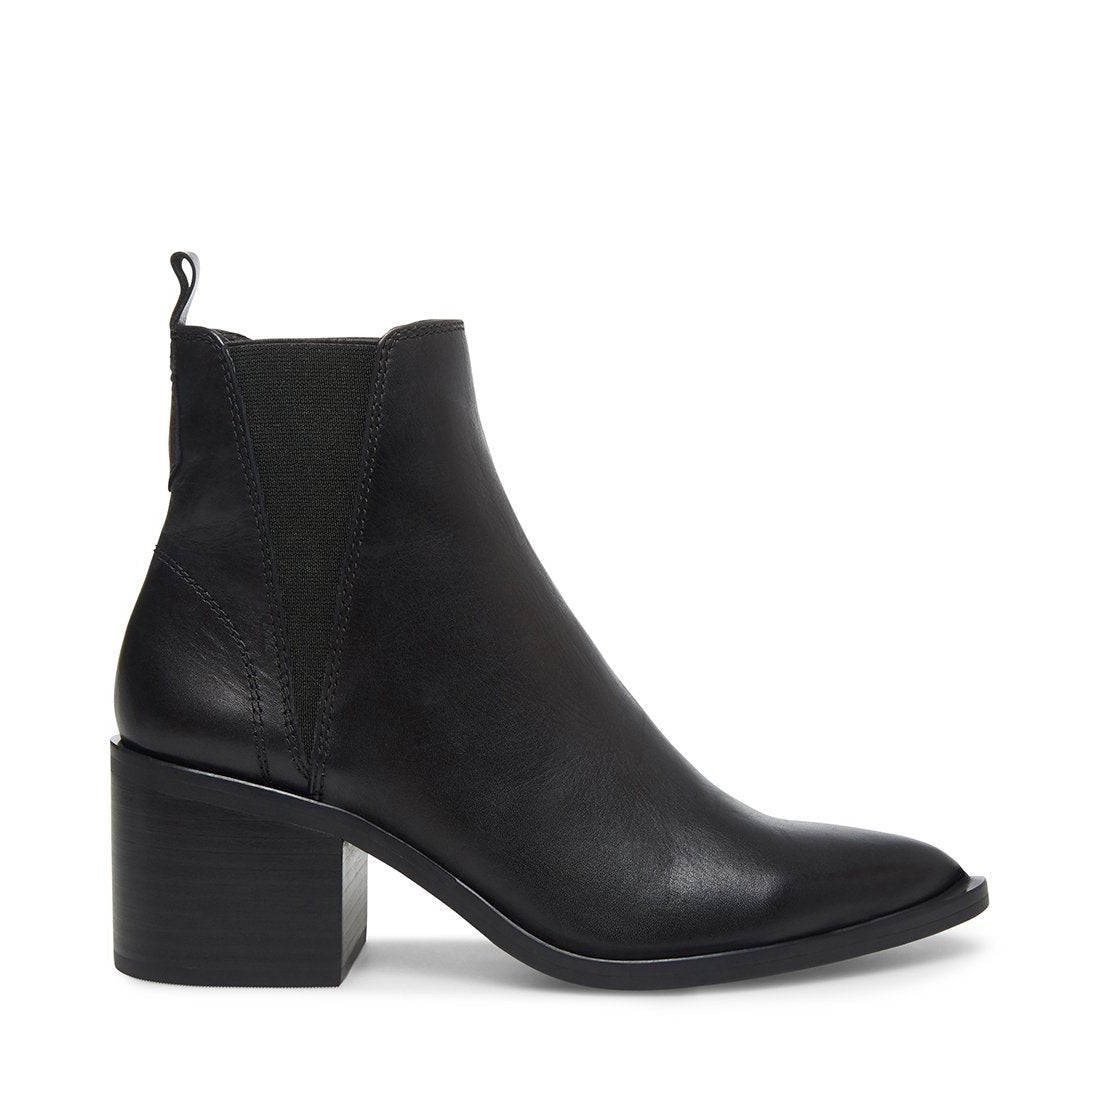 Audience Black Leather by Steve Madden